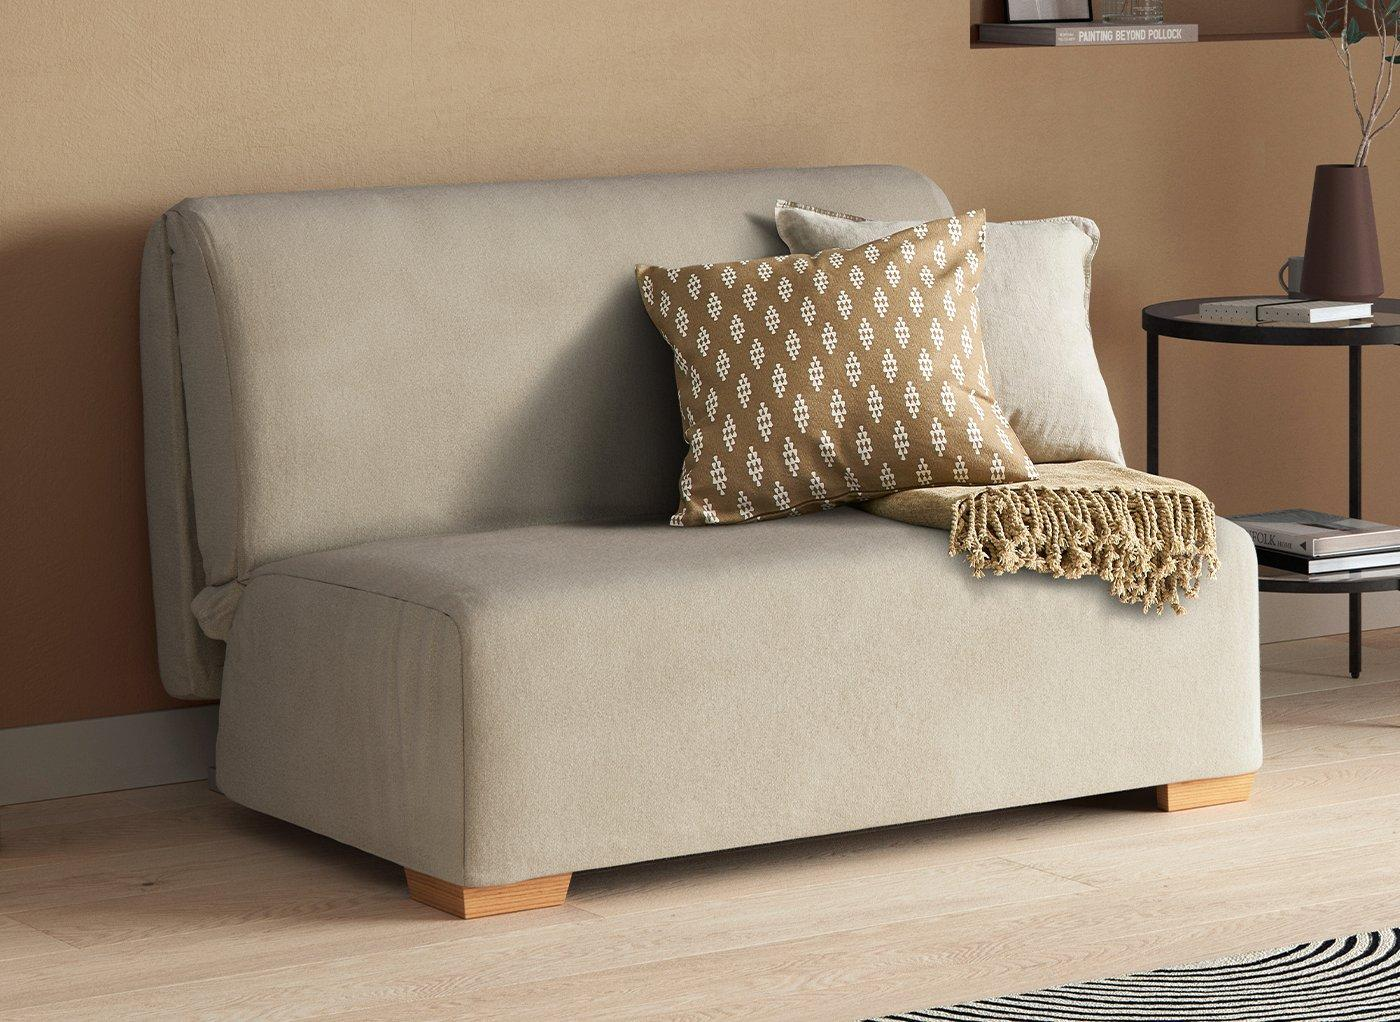 Cork 1 Seater A-Frame Sofa Bed - Cream Single